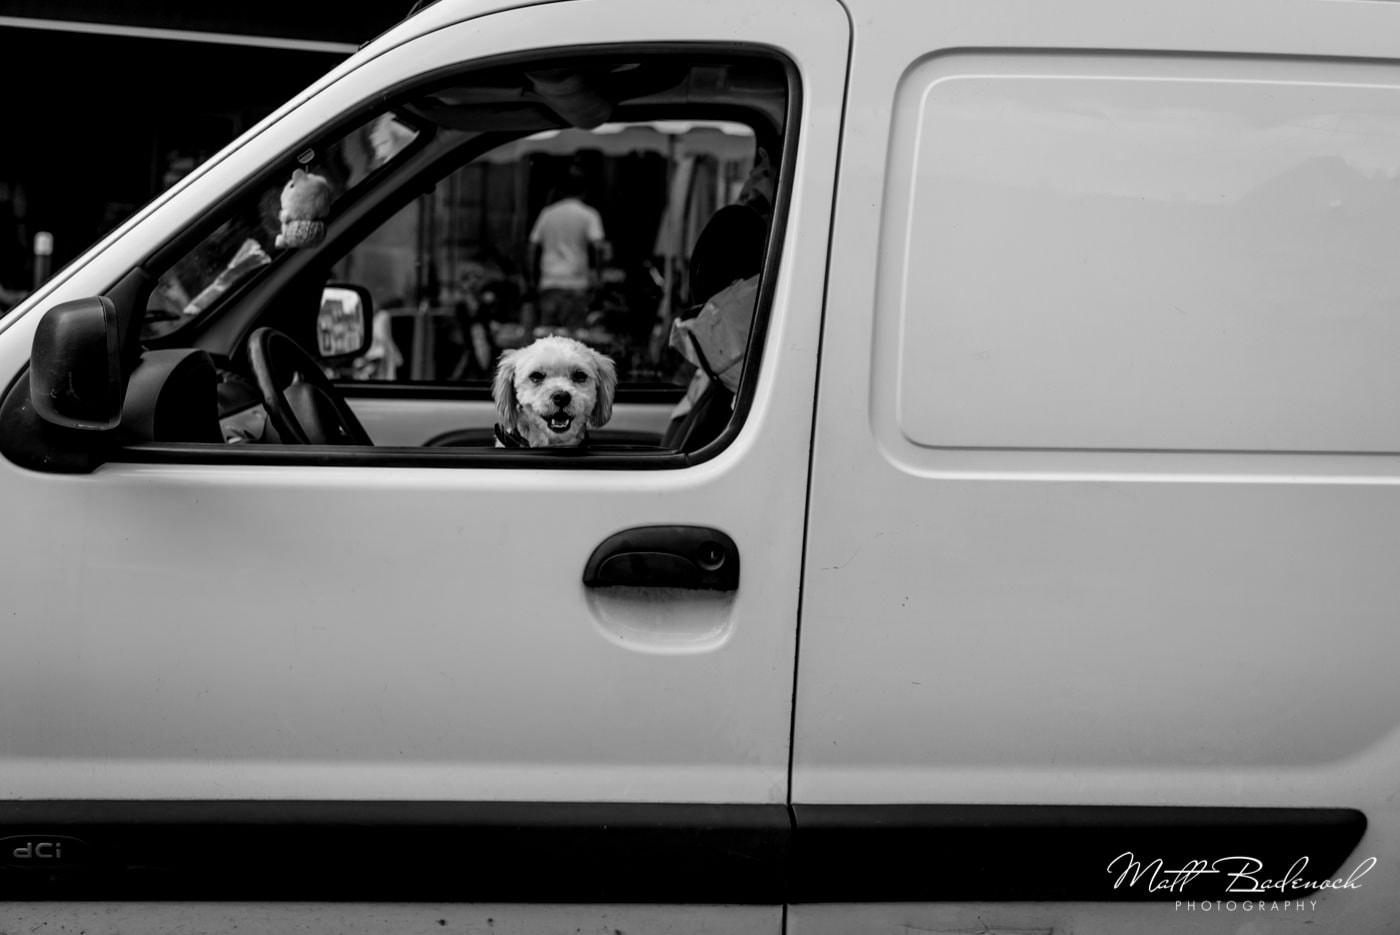 small dog in a white van | bordeaux street photography